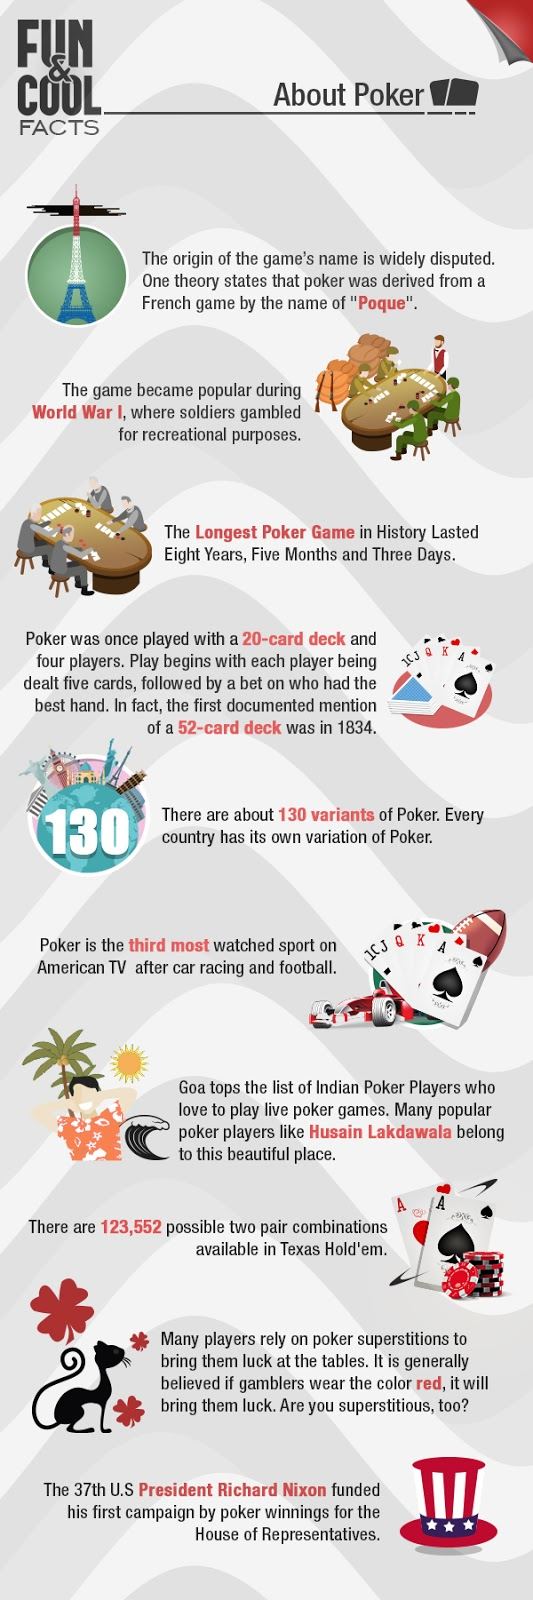 Cool poker facts